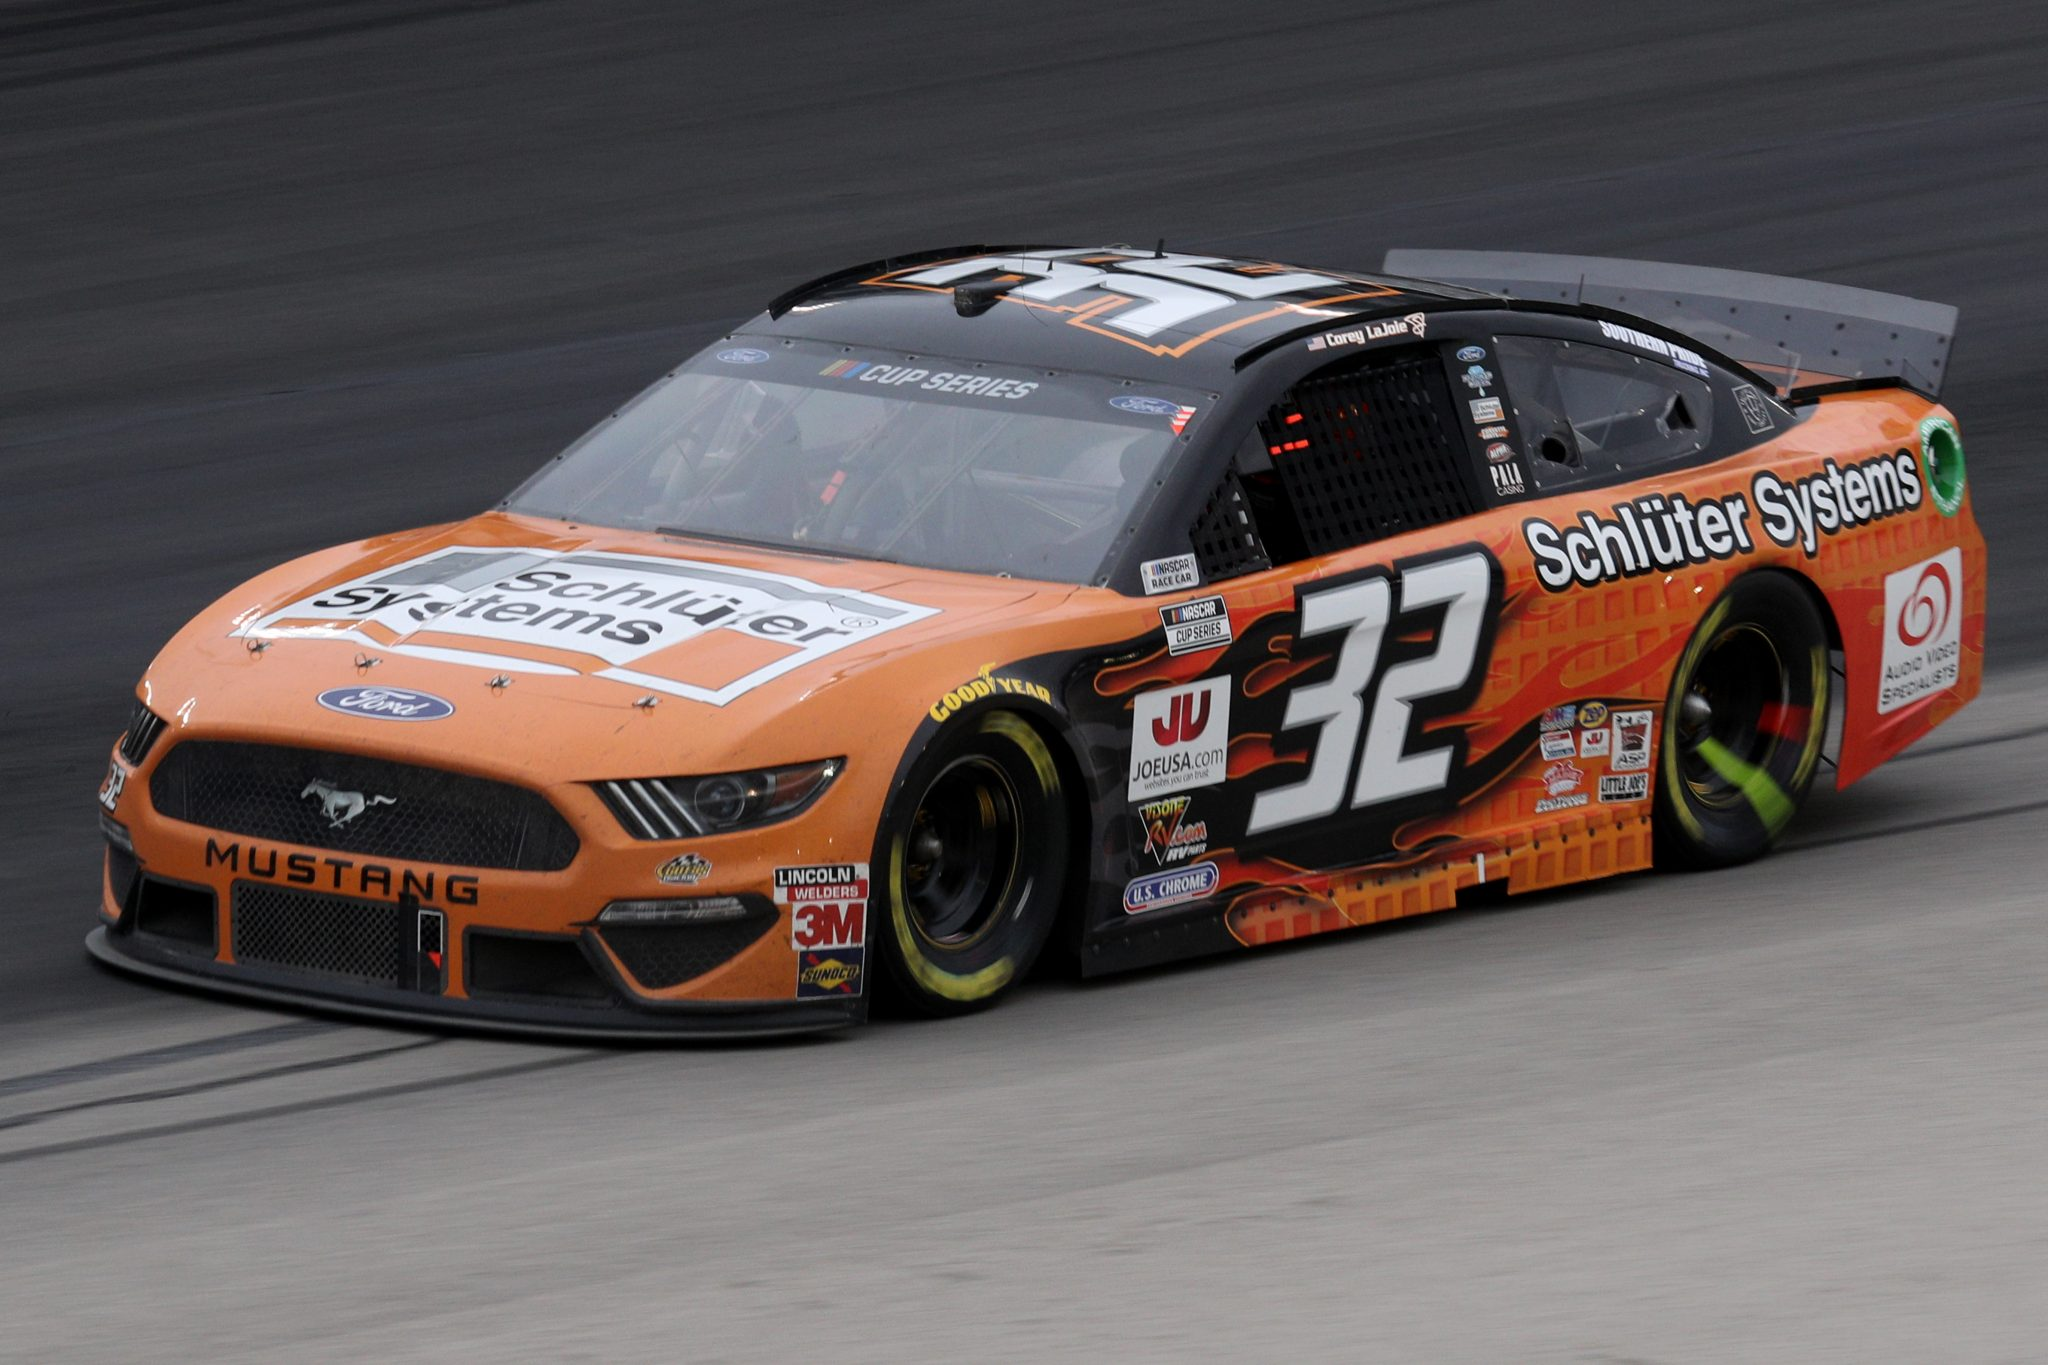 FORT WORTH, TEXAS - OCTOBER 28: Corey LaJoie, driver of the #32 Schluter Systems Ford, drives during the NASCAR Cup Series Autotrader EchoPark Automotive 500 at Texas Motor Speedway on October 28, 2020 in Fort Worth, Texas. (Photo by Chris Graythen/Getty Images) | Getty Images